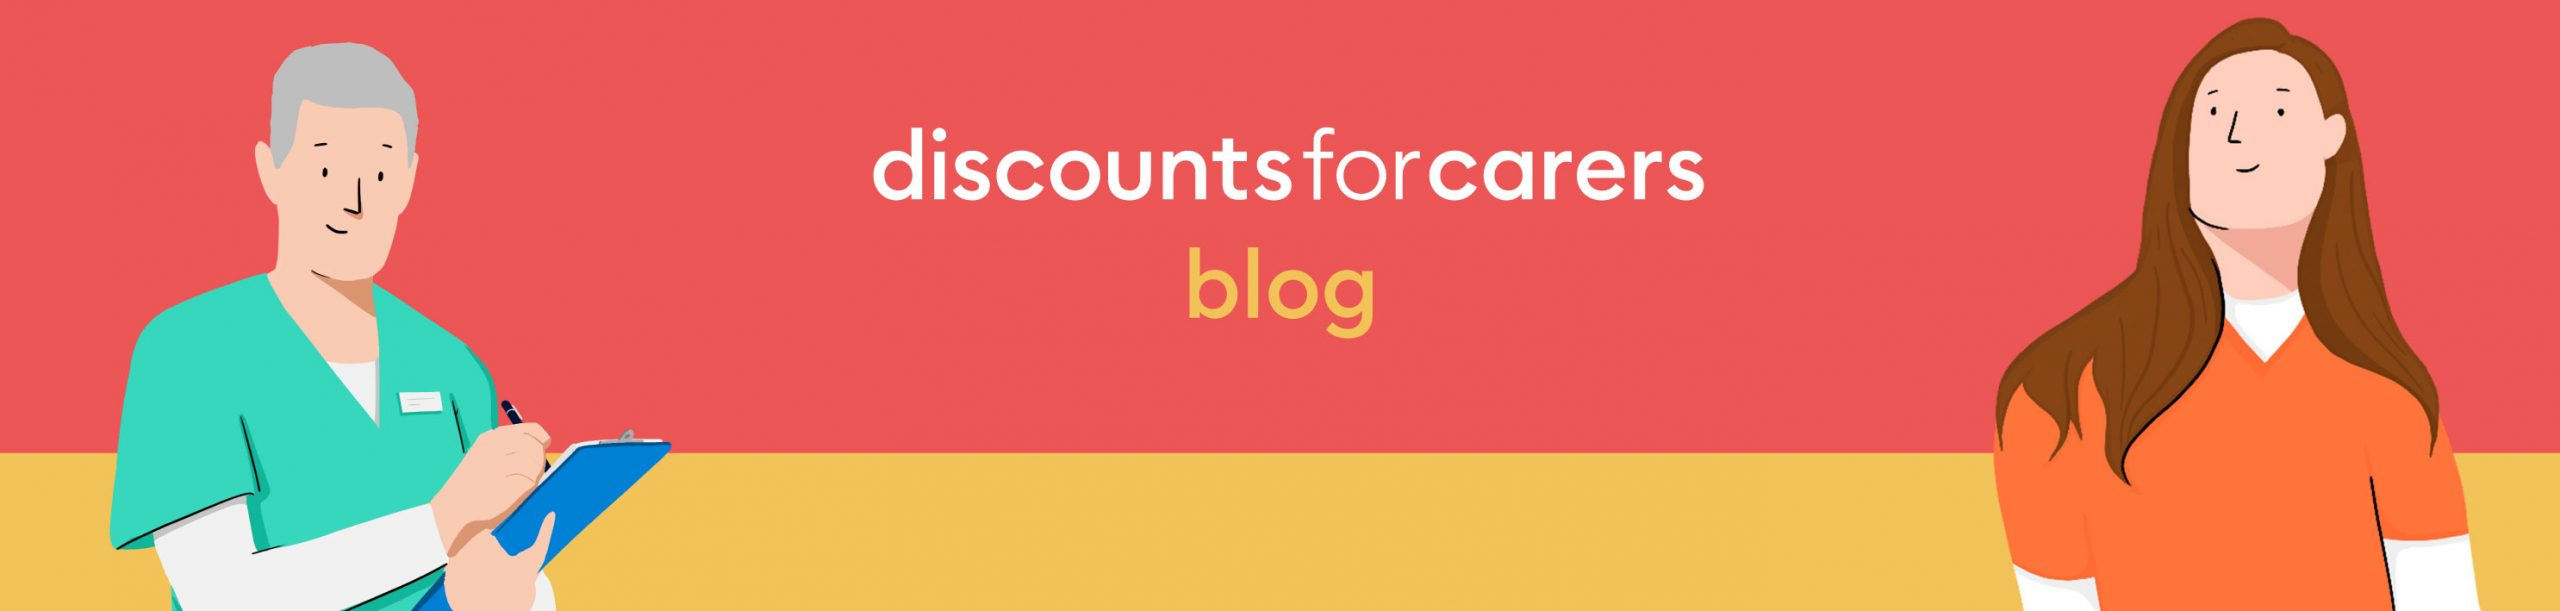 Discounts For Carers Blog